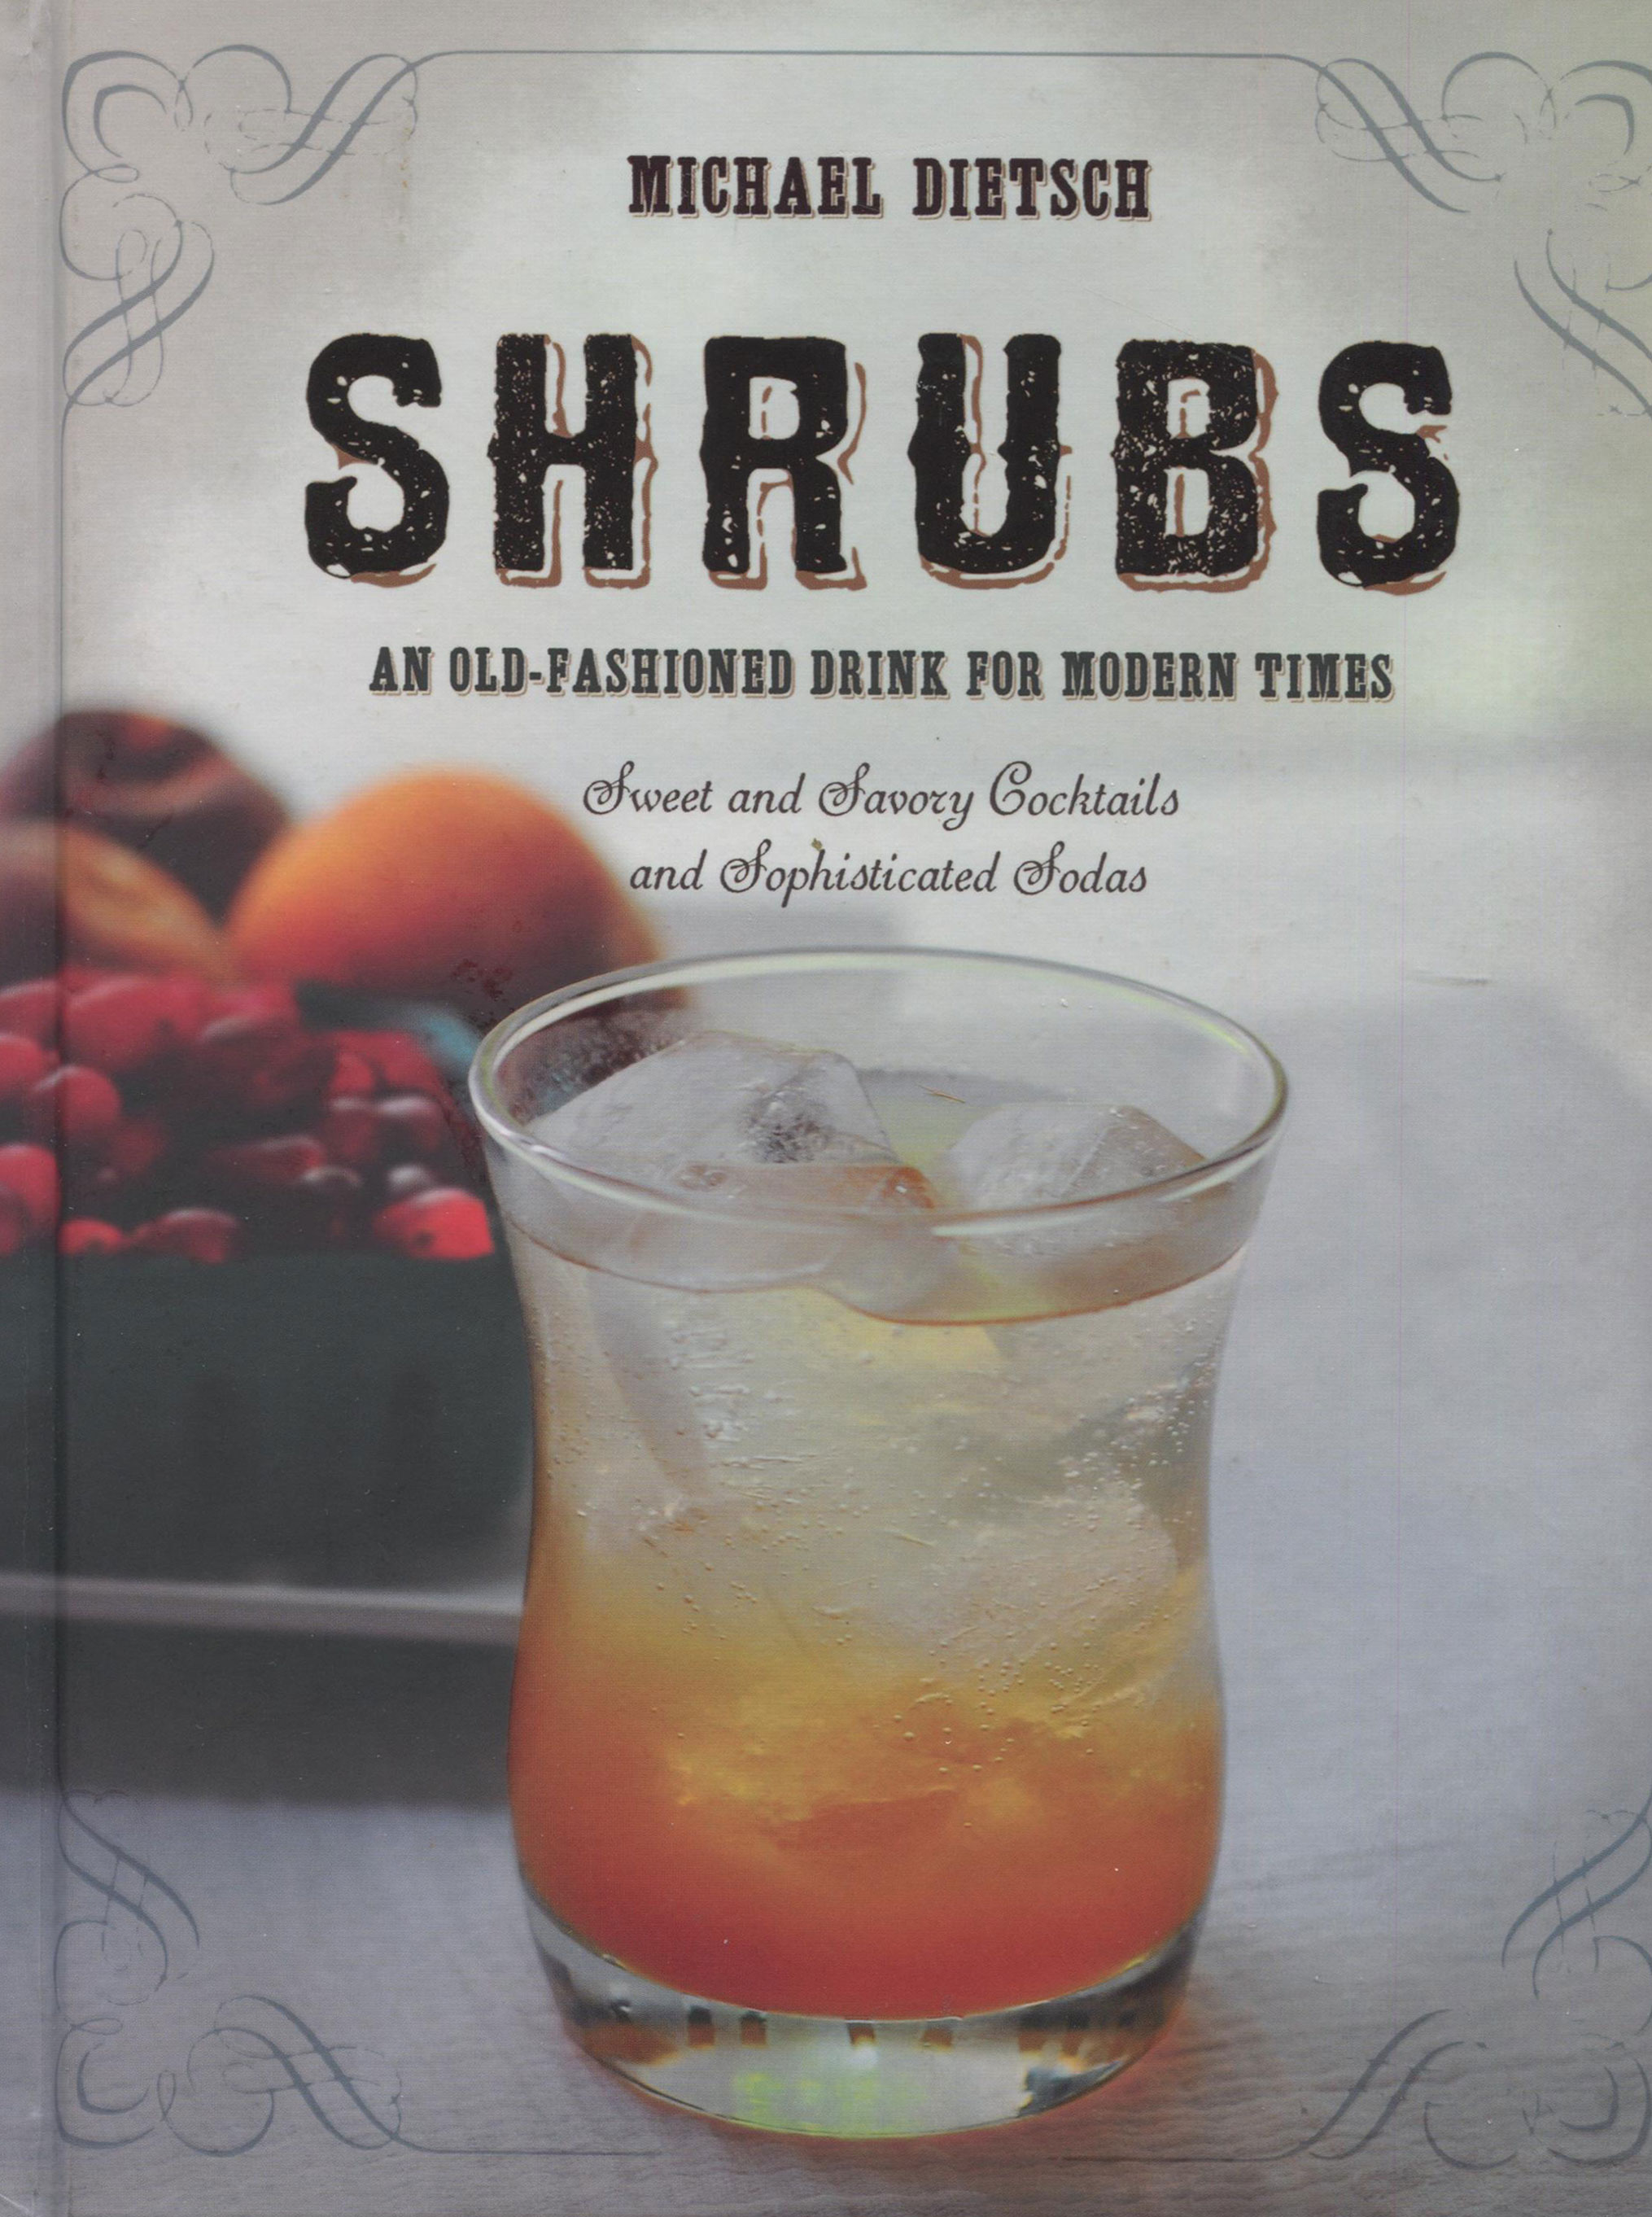 A Summer Cookbook for You While We Are in Yellowstone: Shrubs by Michael Dietsch